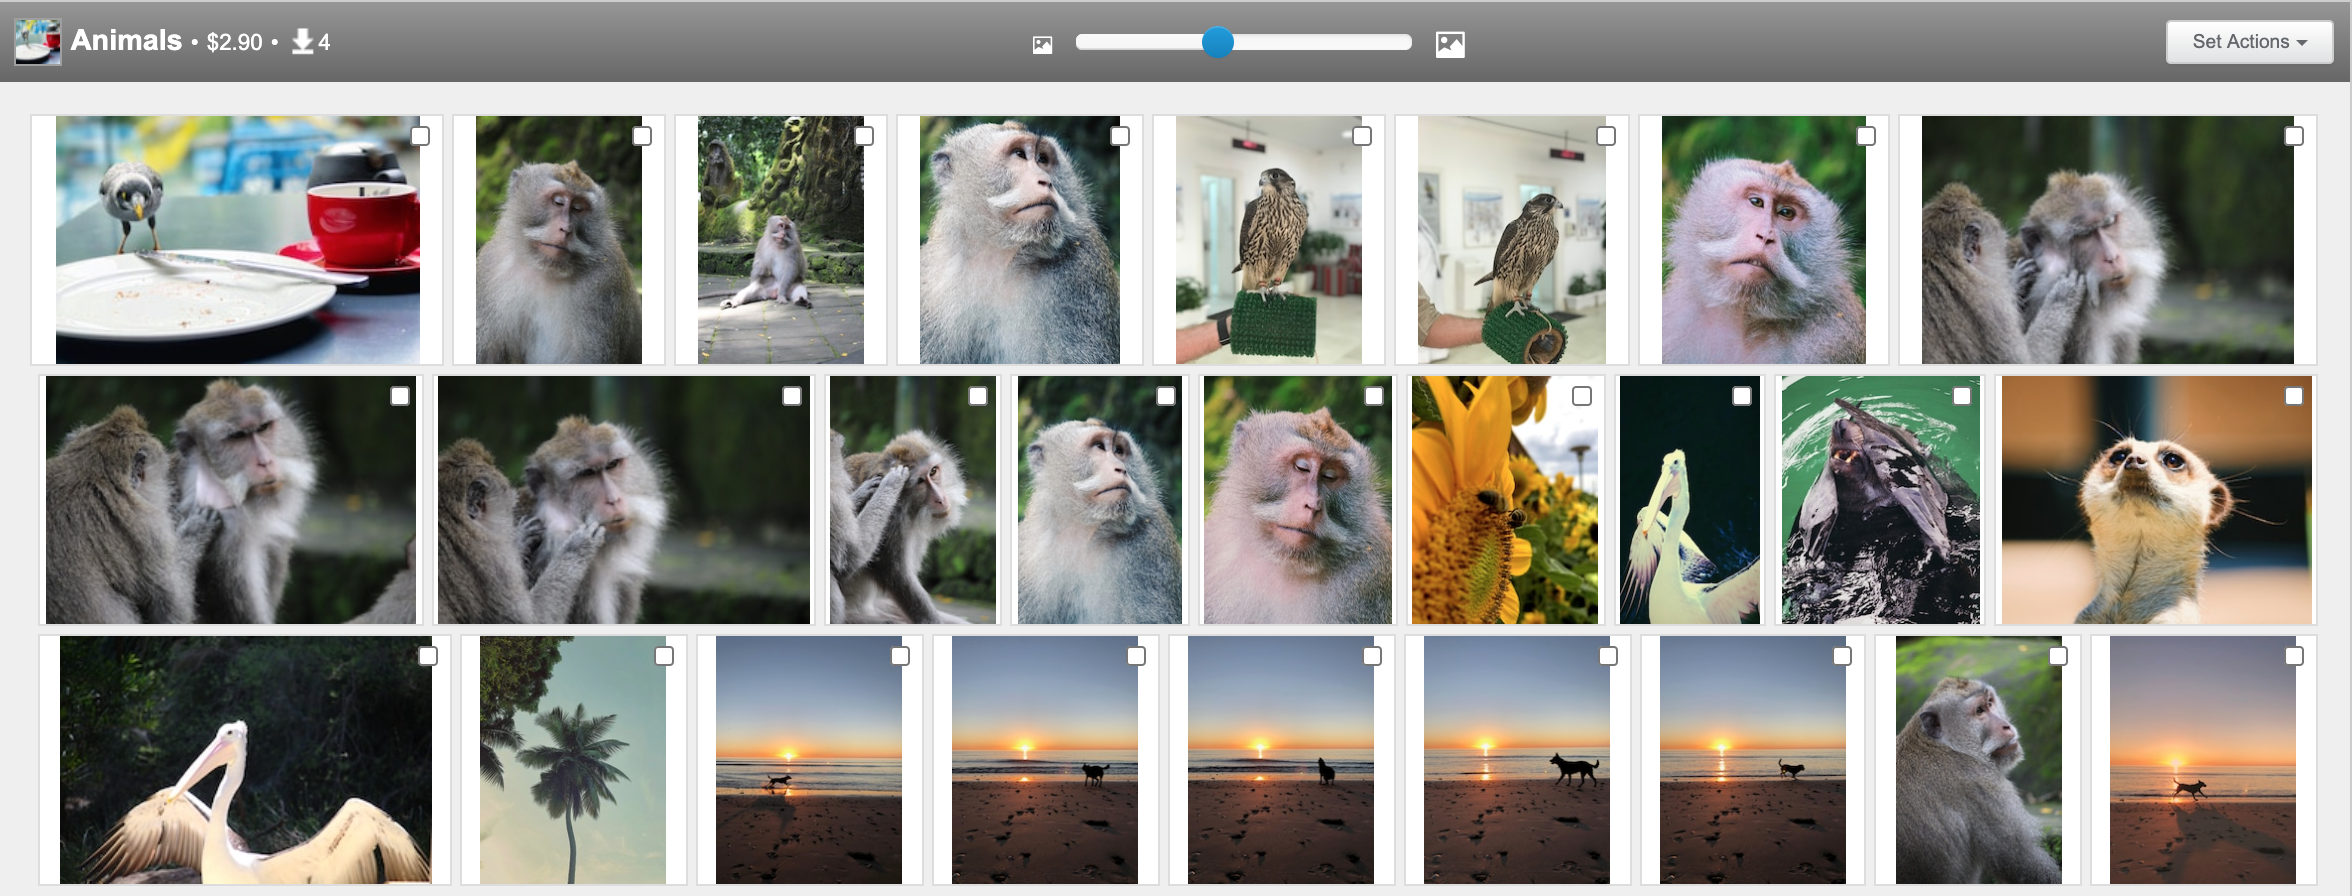 Animal stock photography on Shutterstock conversion.png